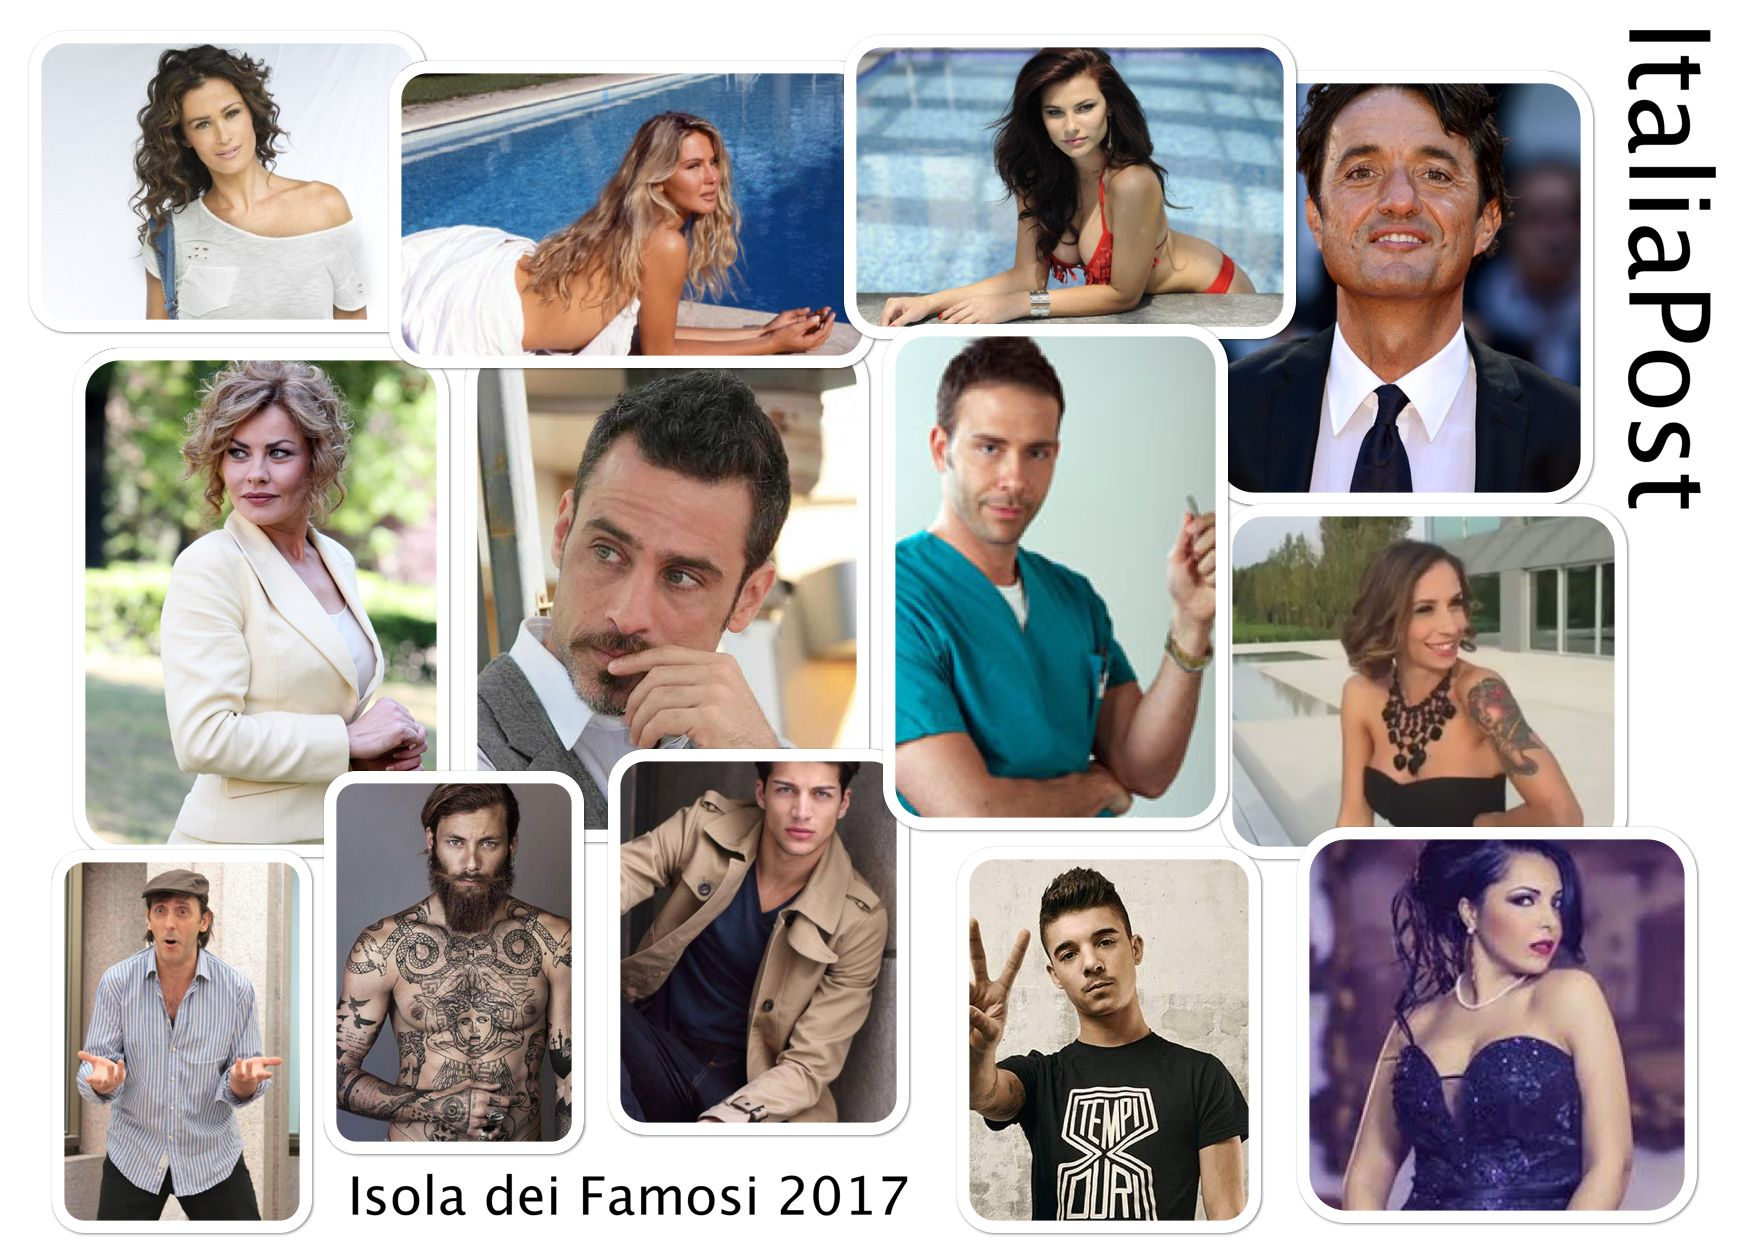 Isola dei Famosi 2017 cast concorrenti: chi è Nancy Coppola